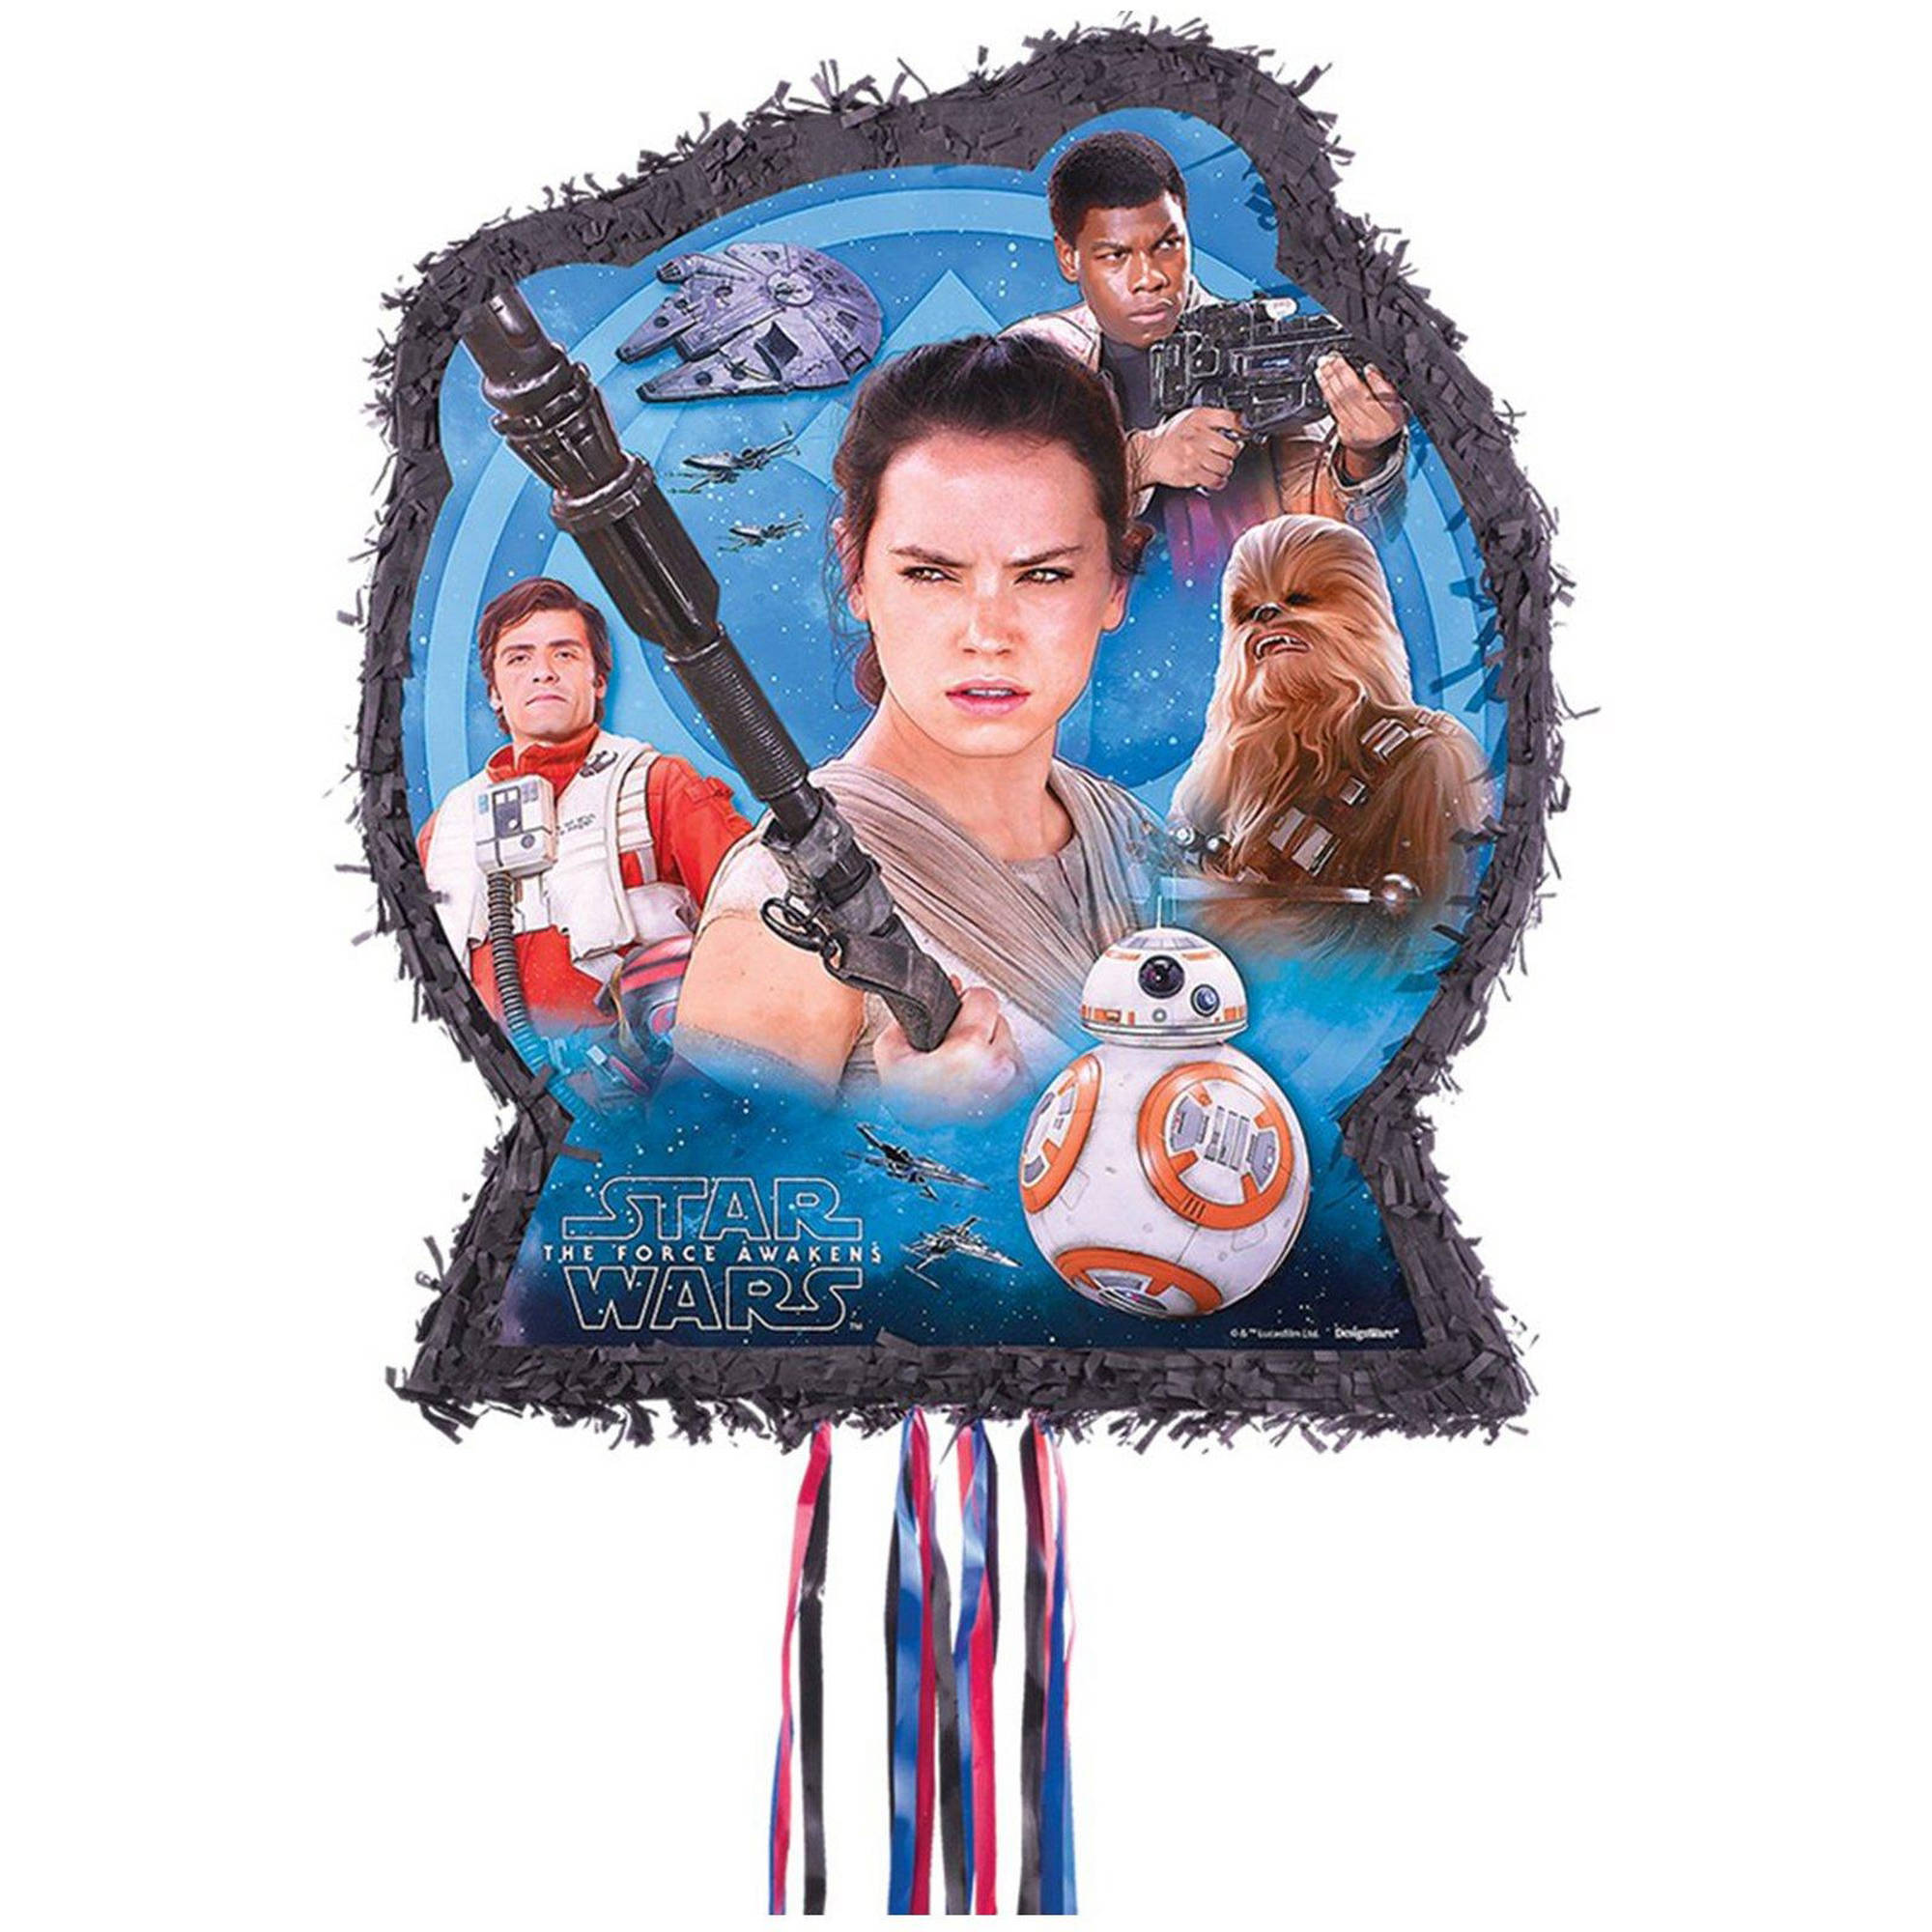 Star Wars Episode VII The Force Awakens Outline Pinata